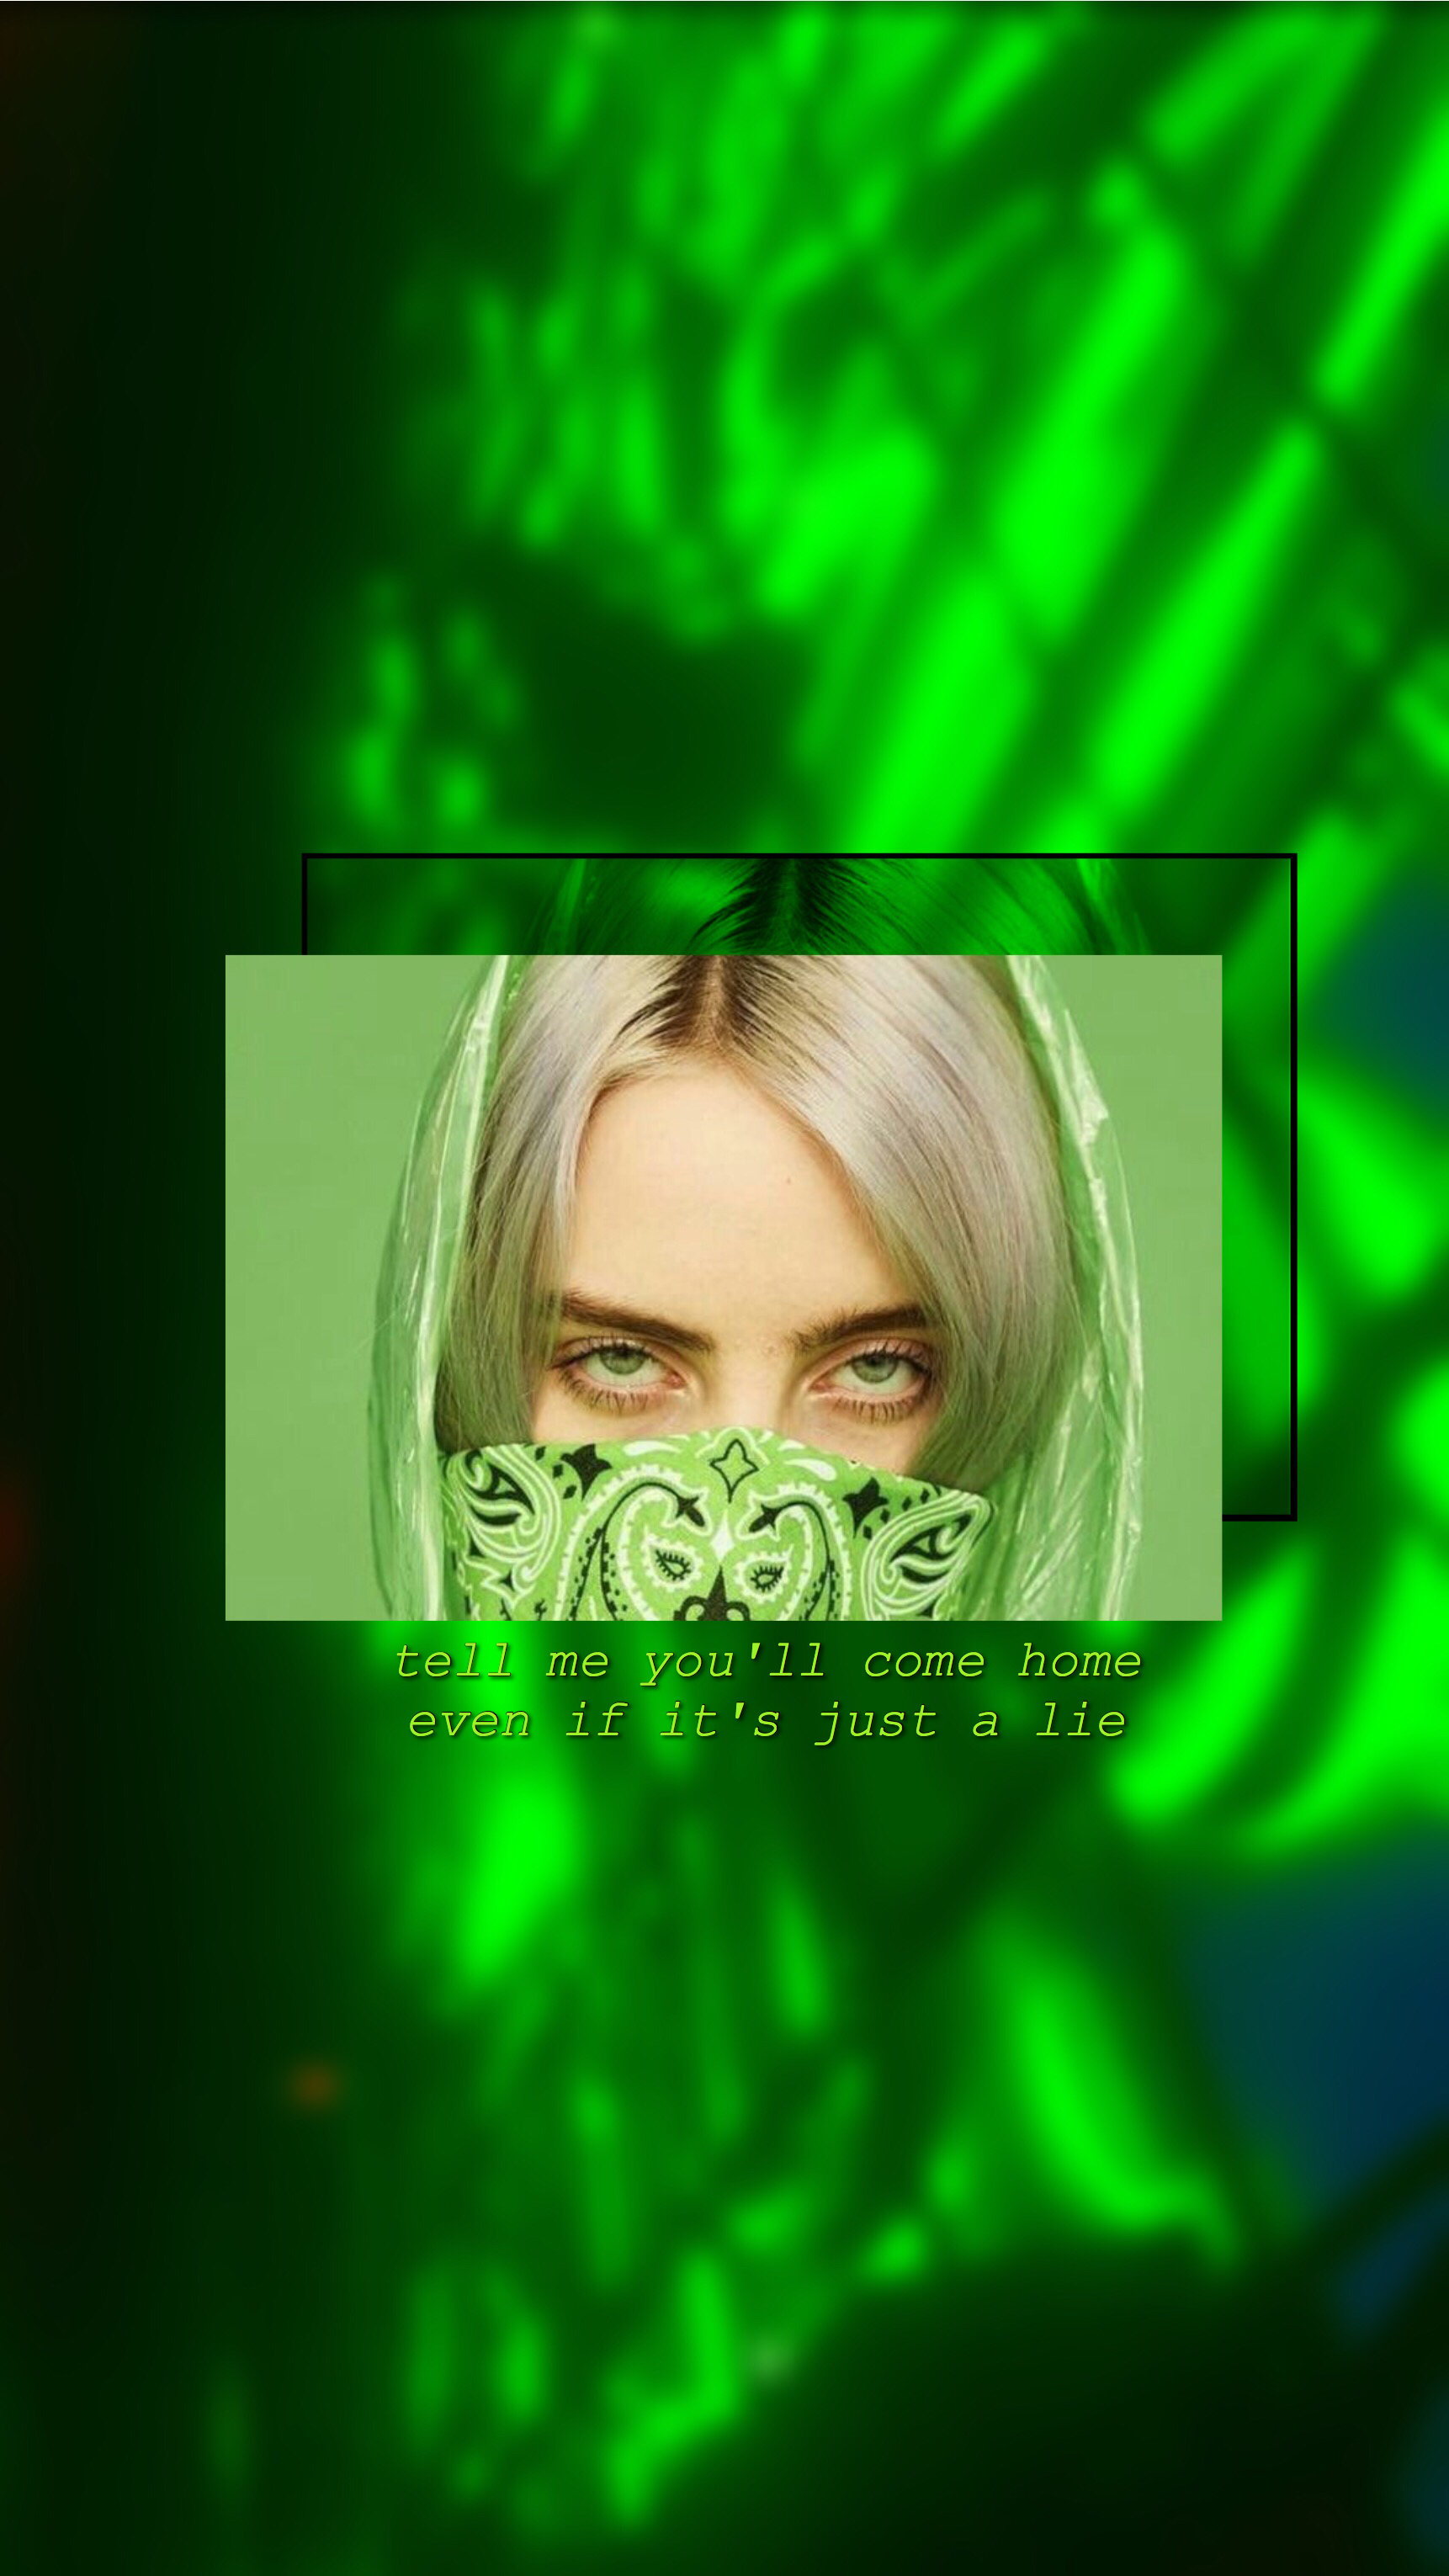 Billie Eilish Ilomilo Green Aesthetic Wallpaper Lockscreen Dark Green Aesthetic Green Aesthetic Black Aesthetic Wallpaper